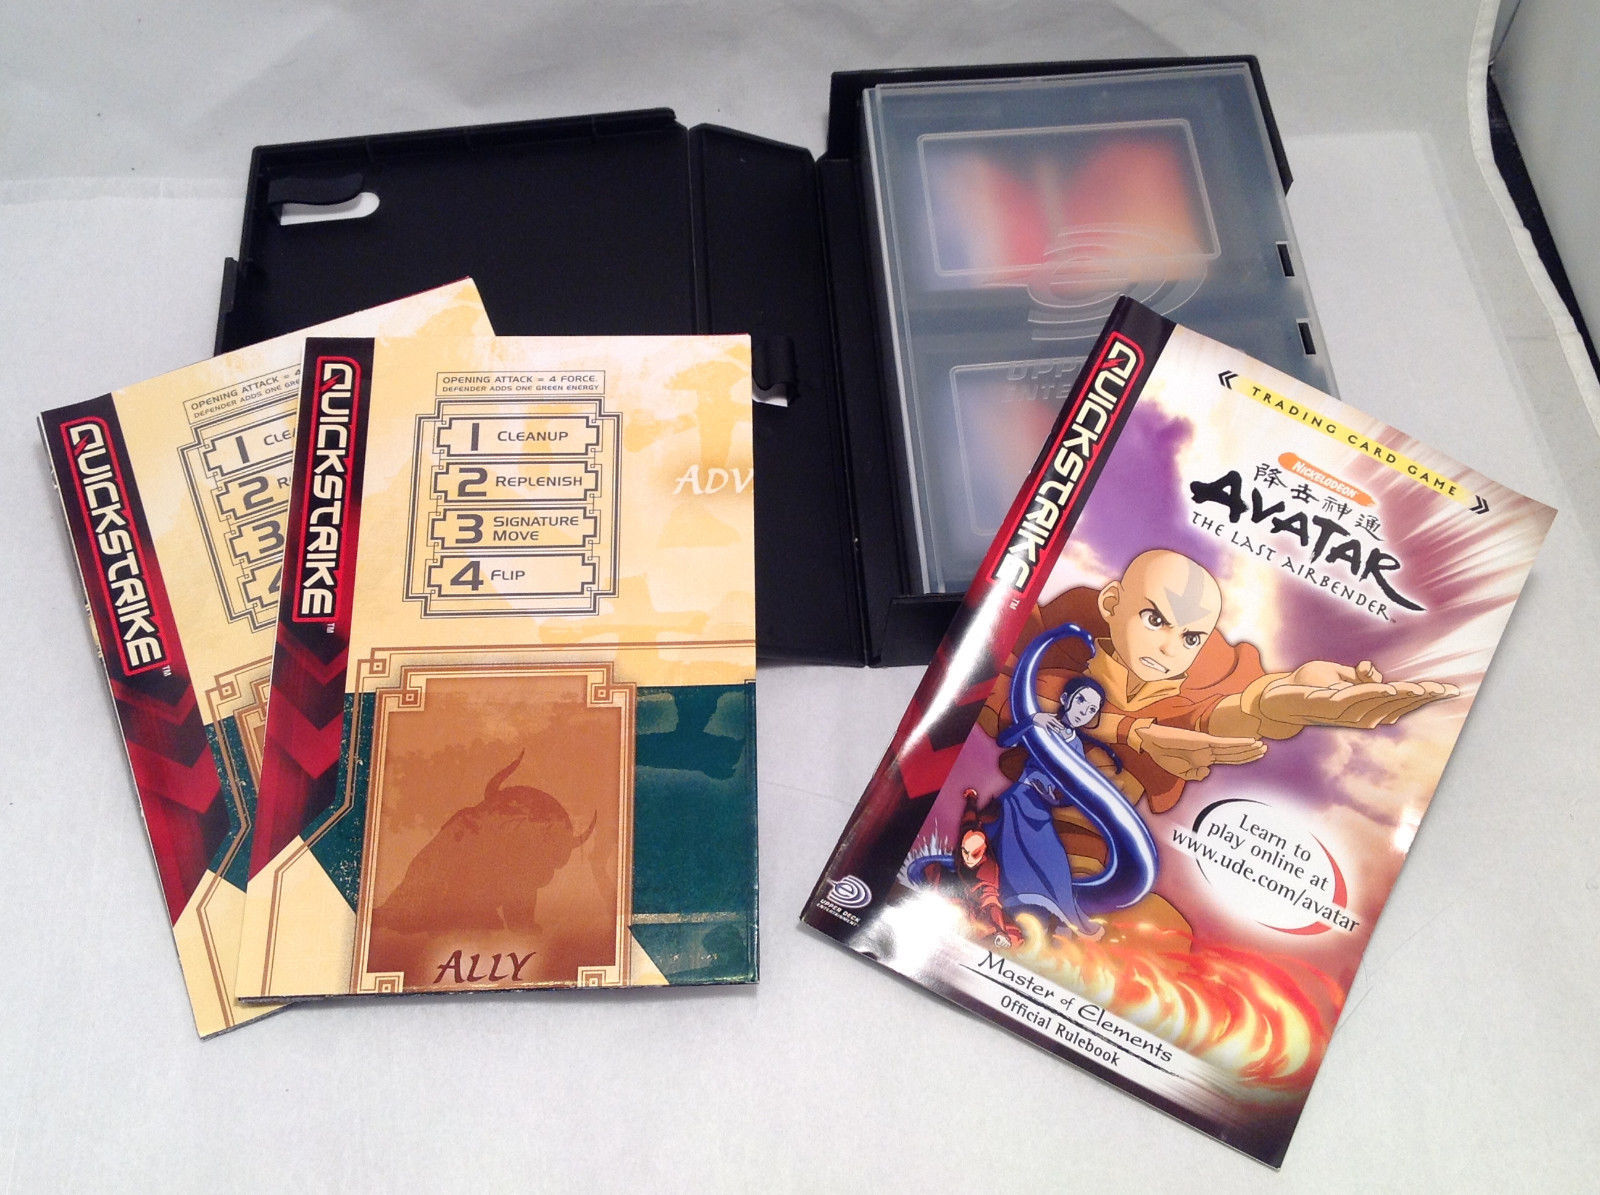 Quickstrike trading card game system